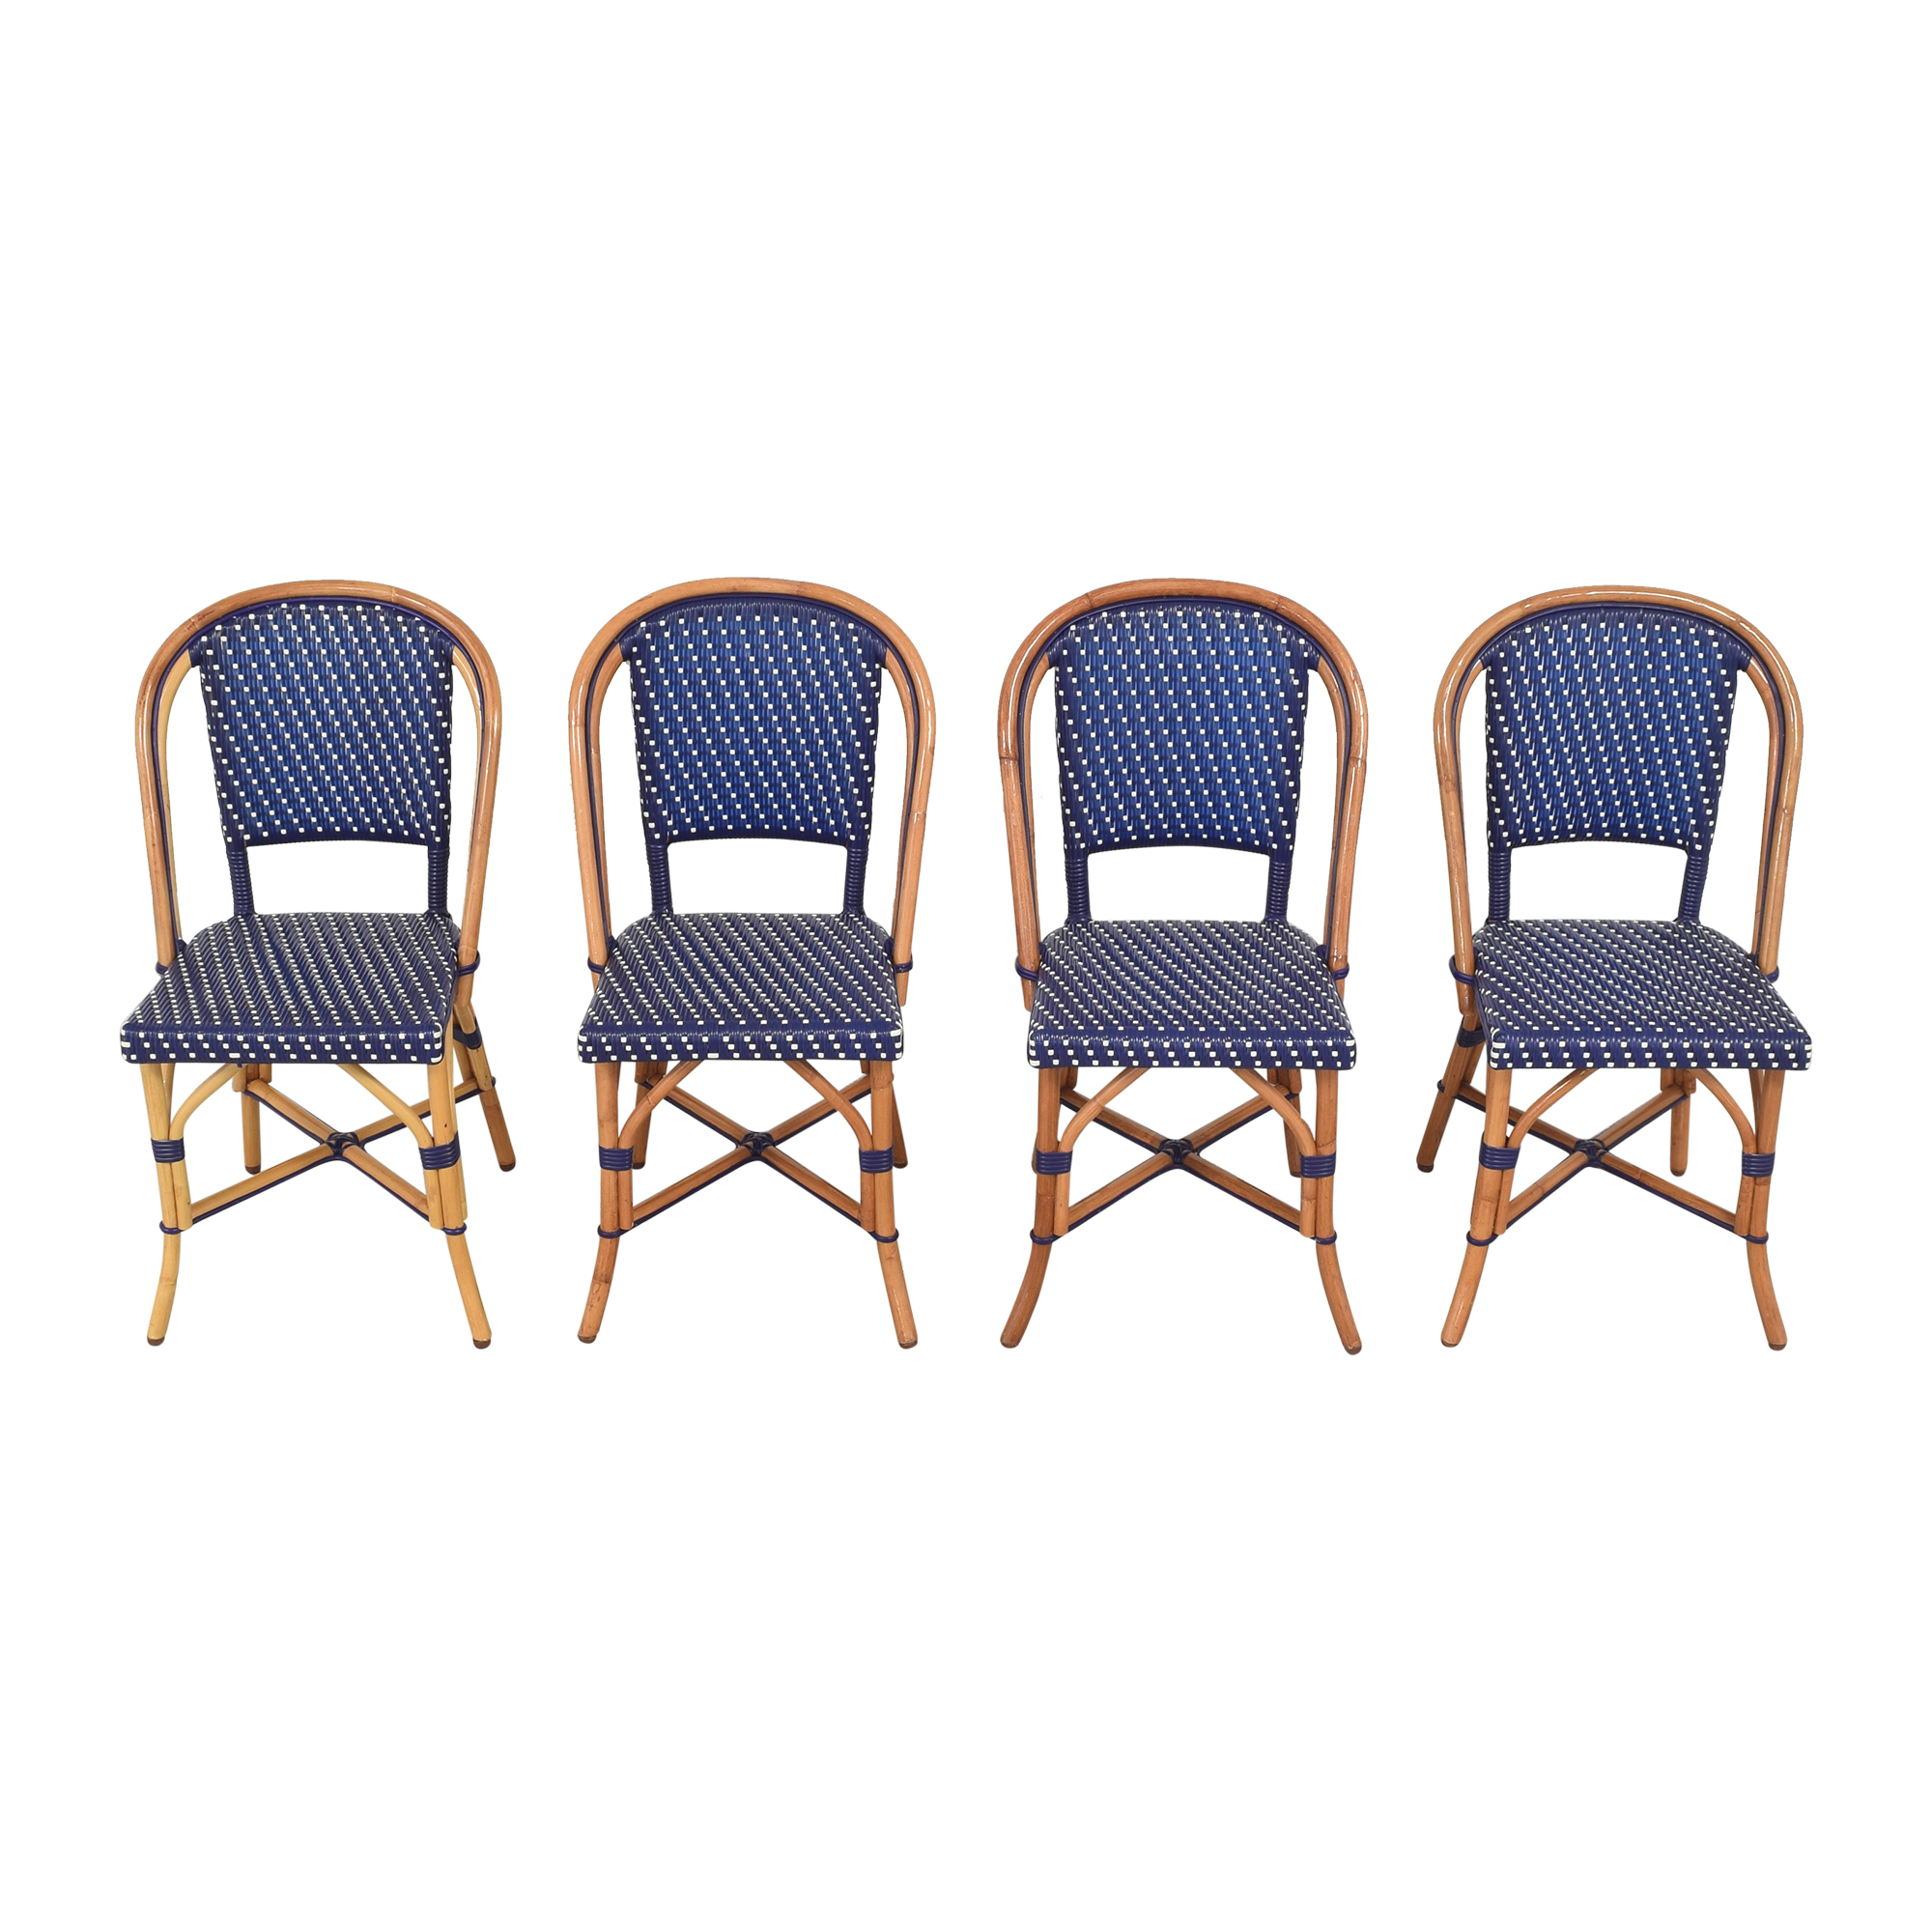 French Bistro Chairs / Chairs